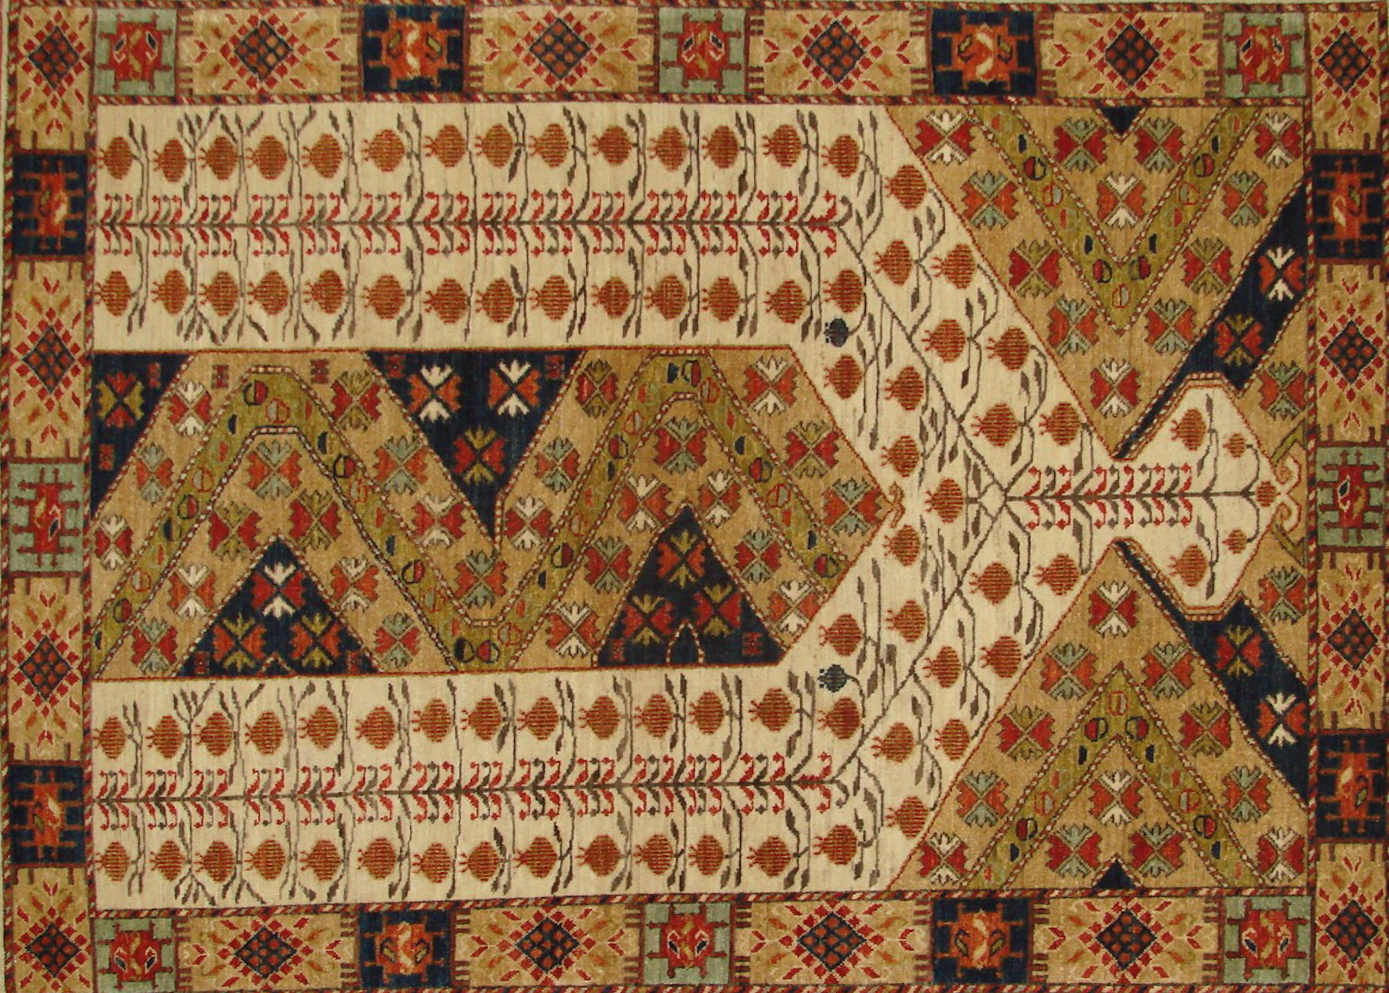 5x7/8 Antique Revival Hand Knotted Wool Area Rug - MR20897